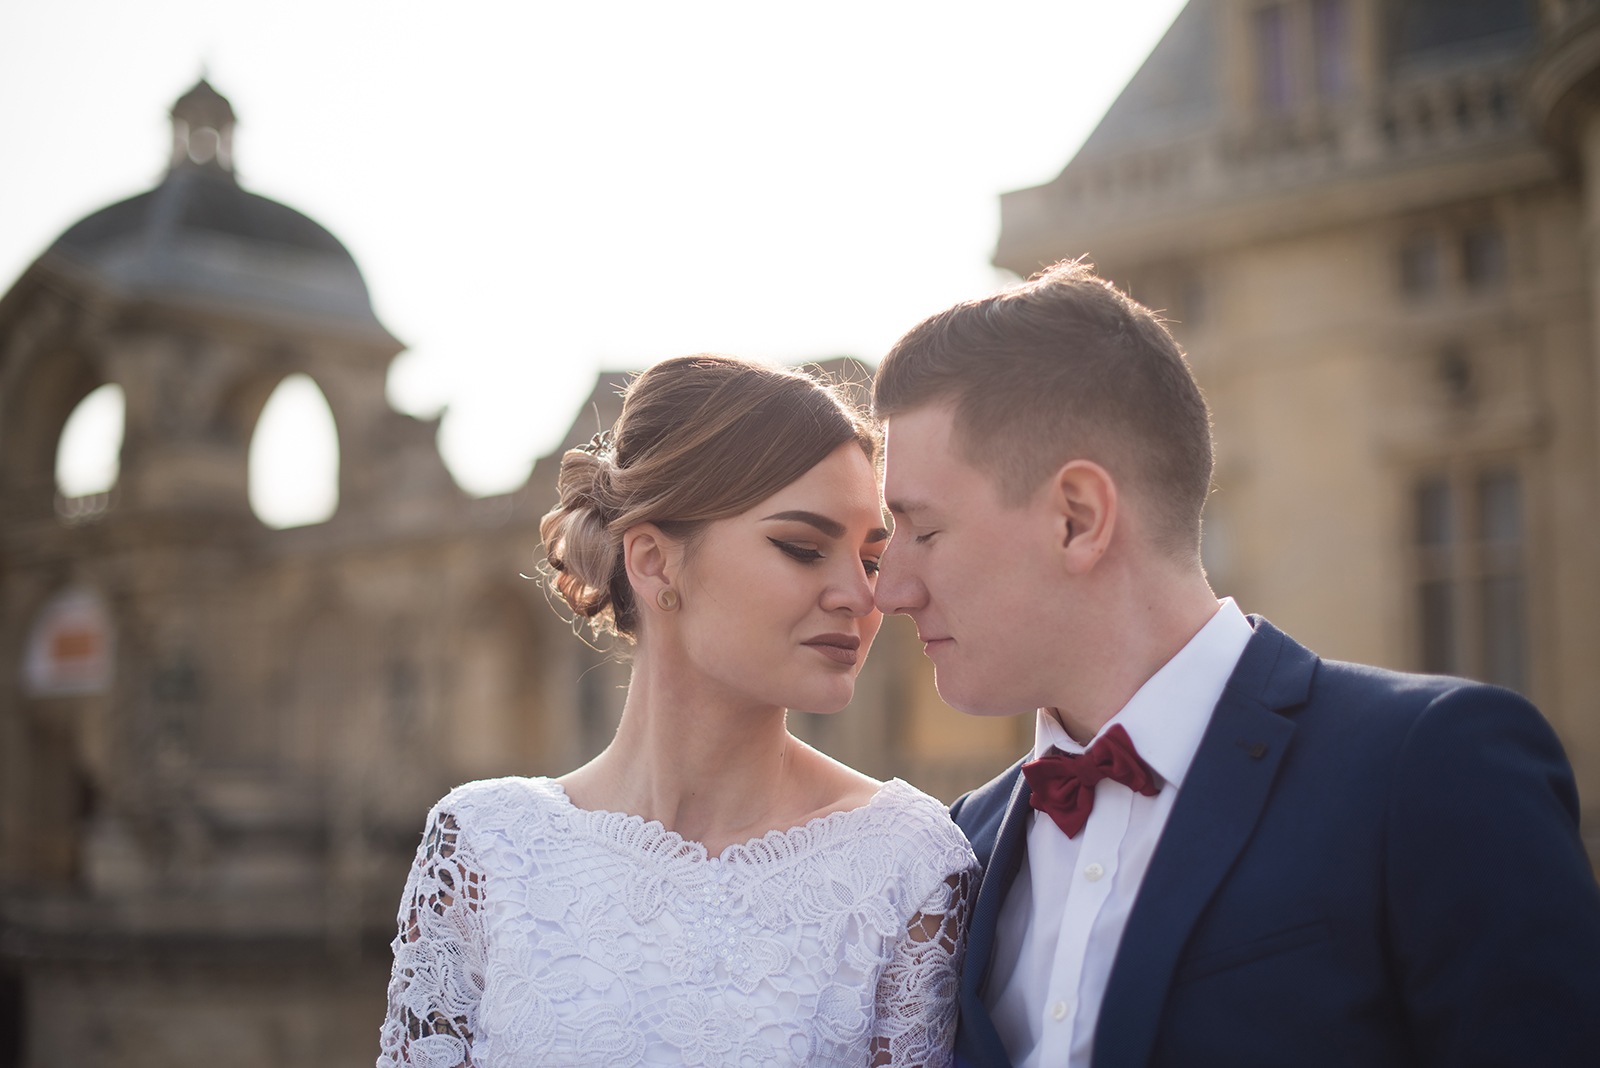 roxane-hennequin-photographe-compiegne-mariage-wedding-reportage